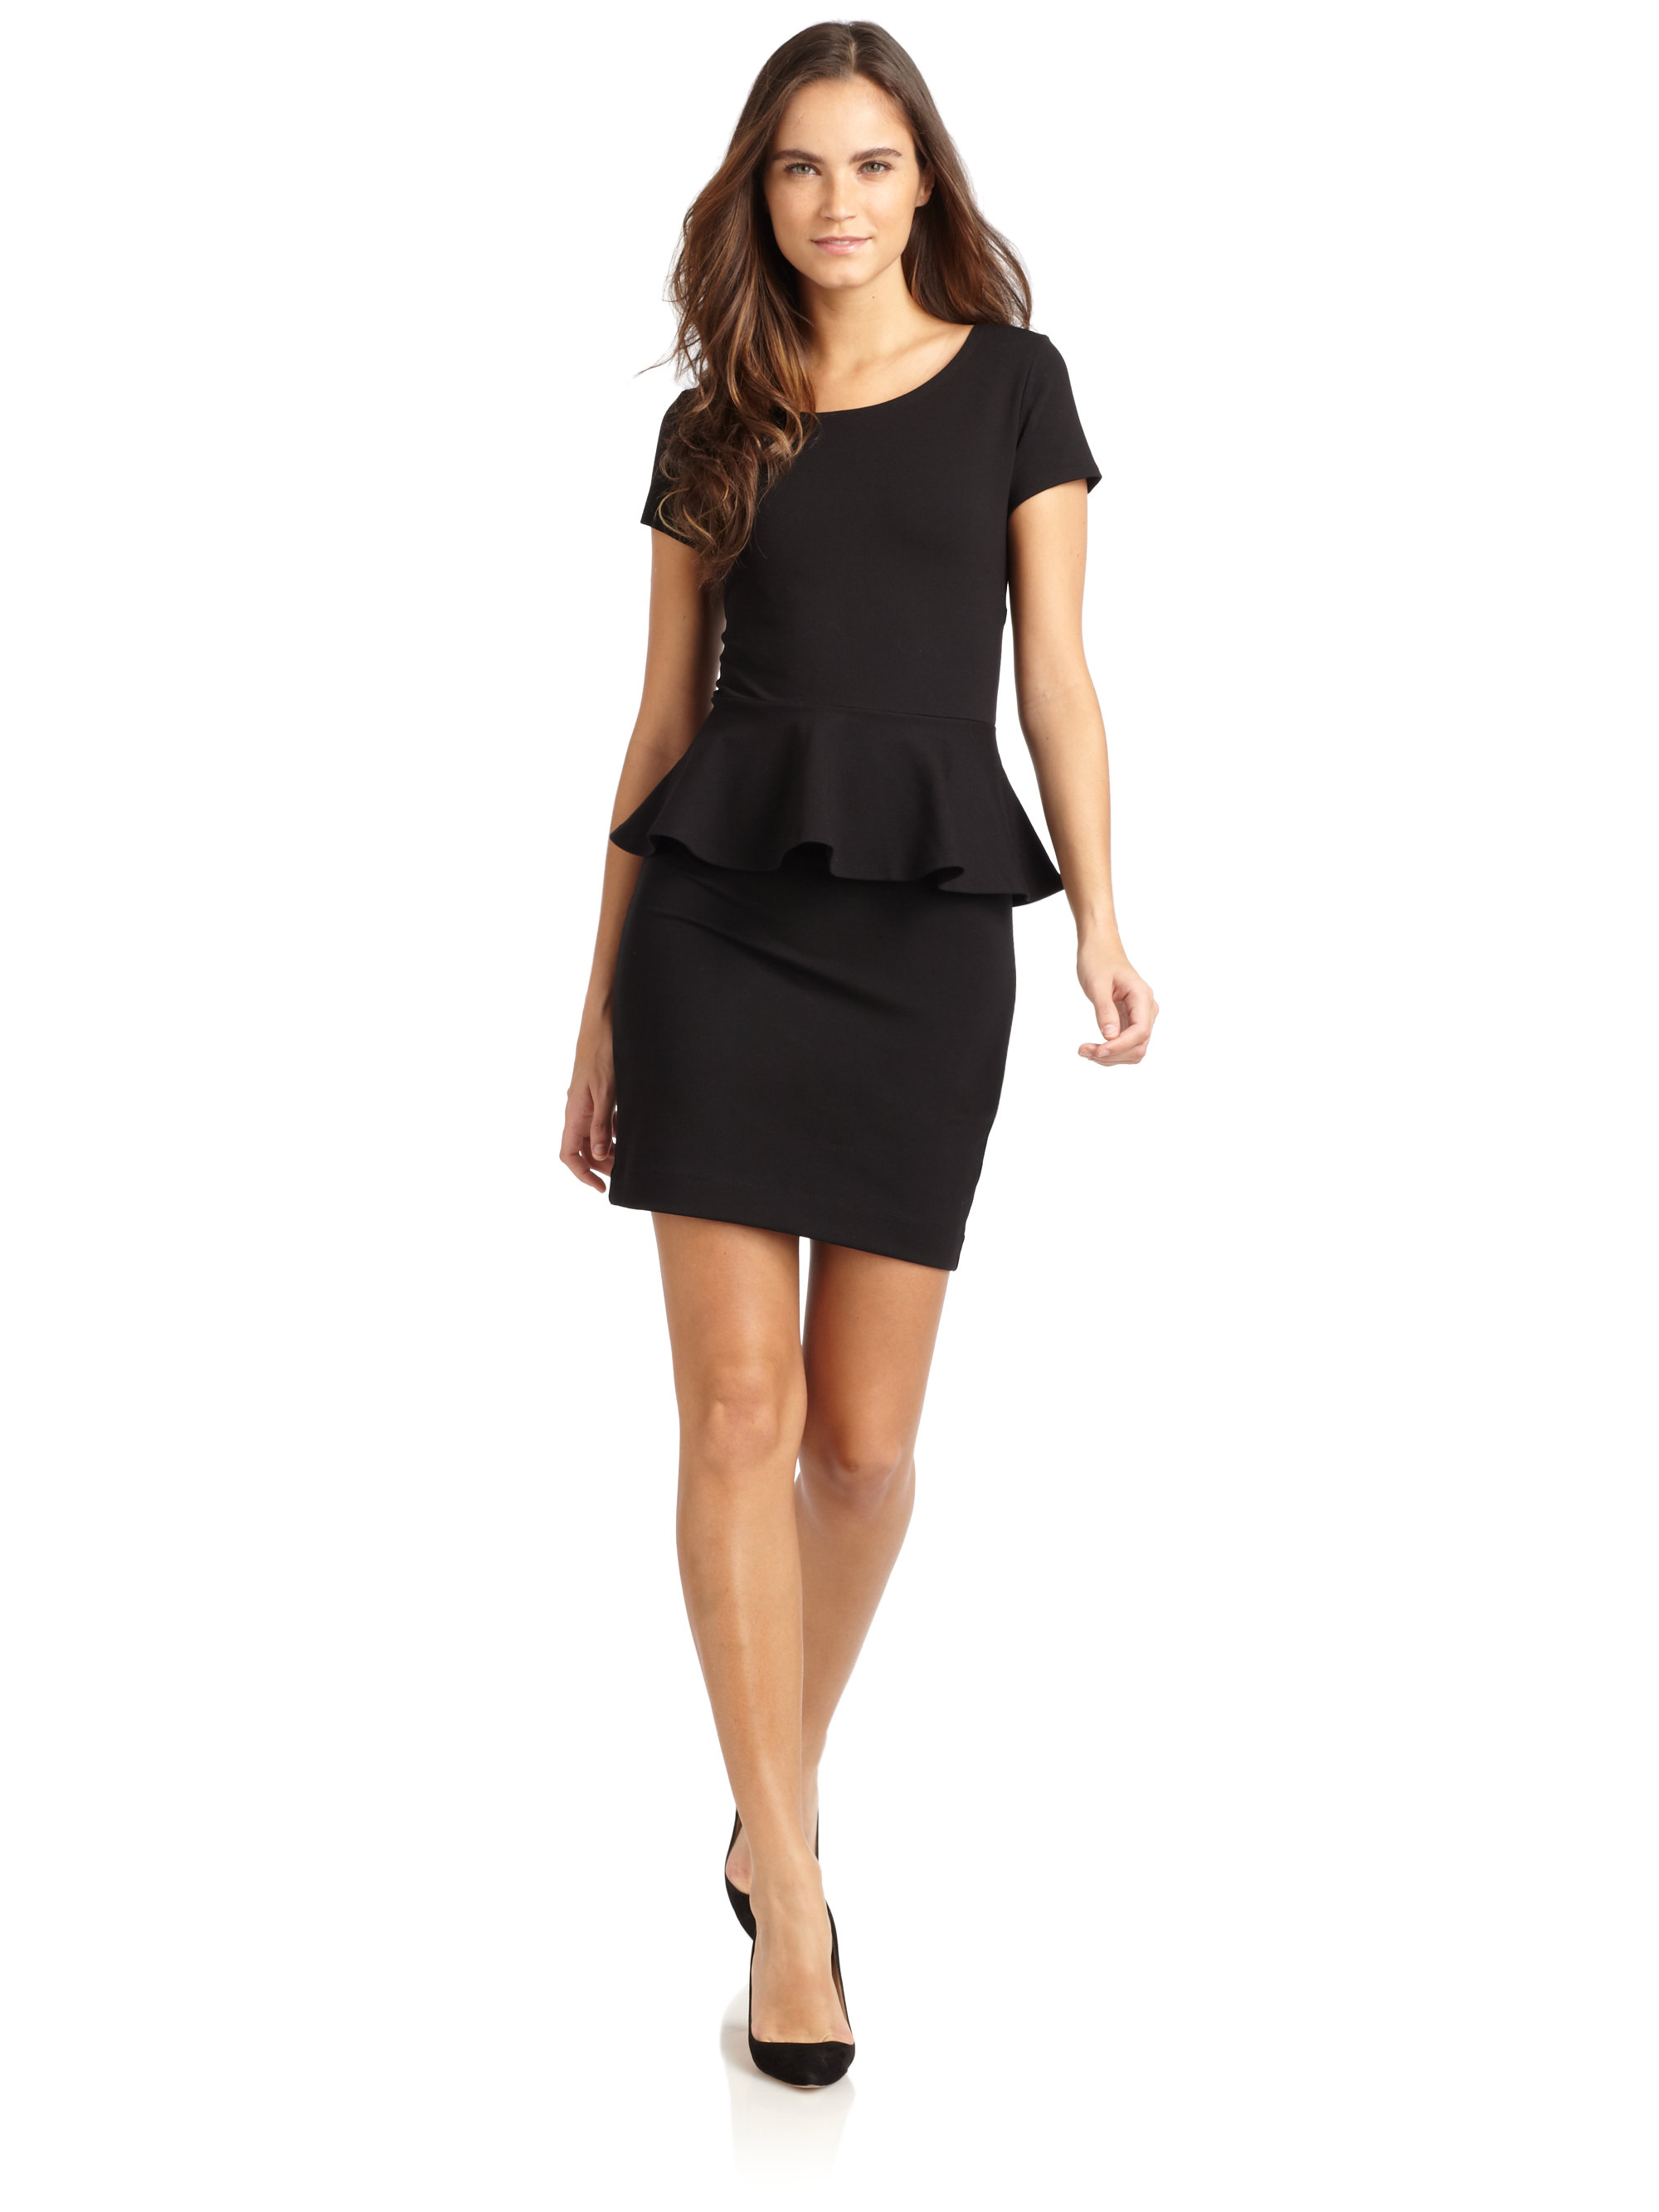 Gallery Previously Sold At Saks Fifth Avenue Women S Peplum Dresses